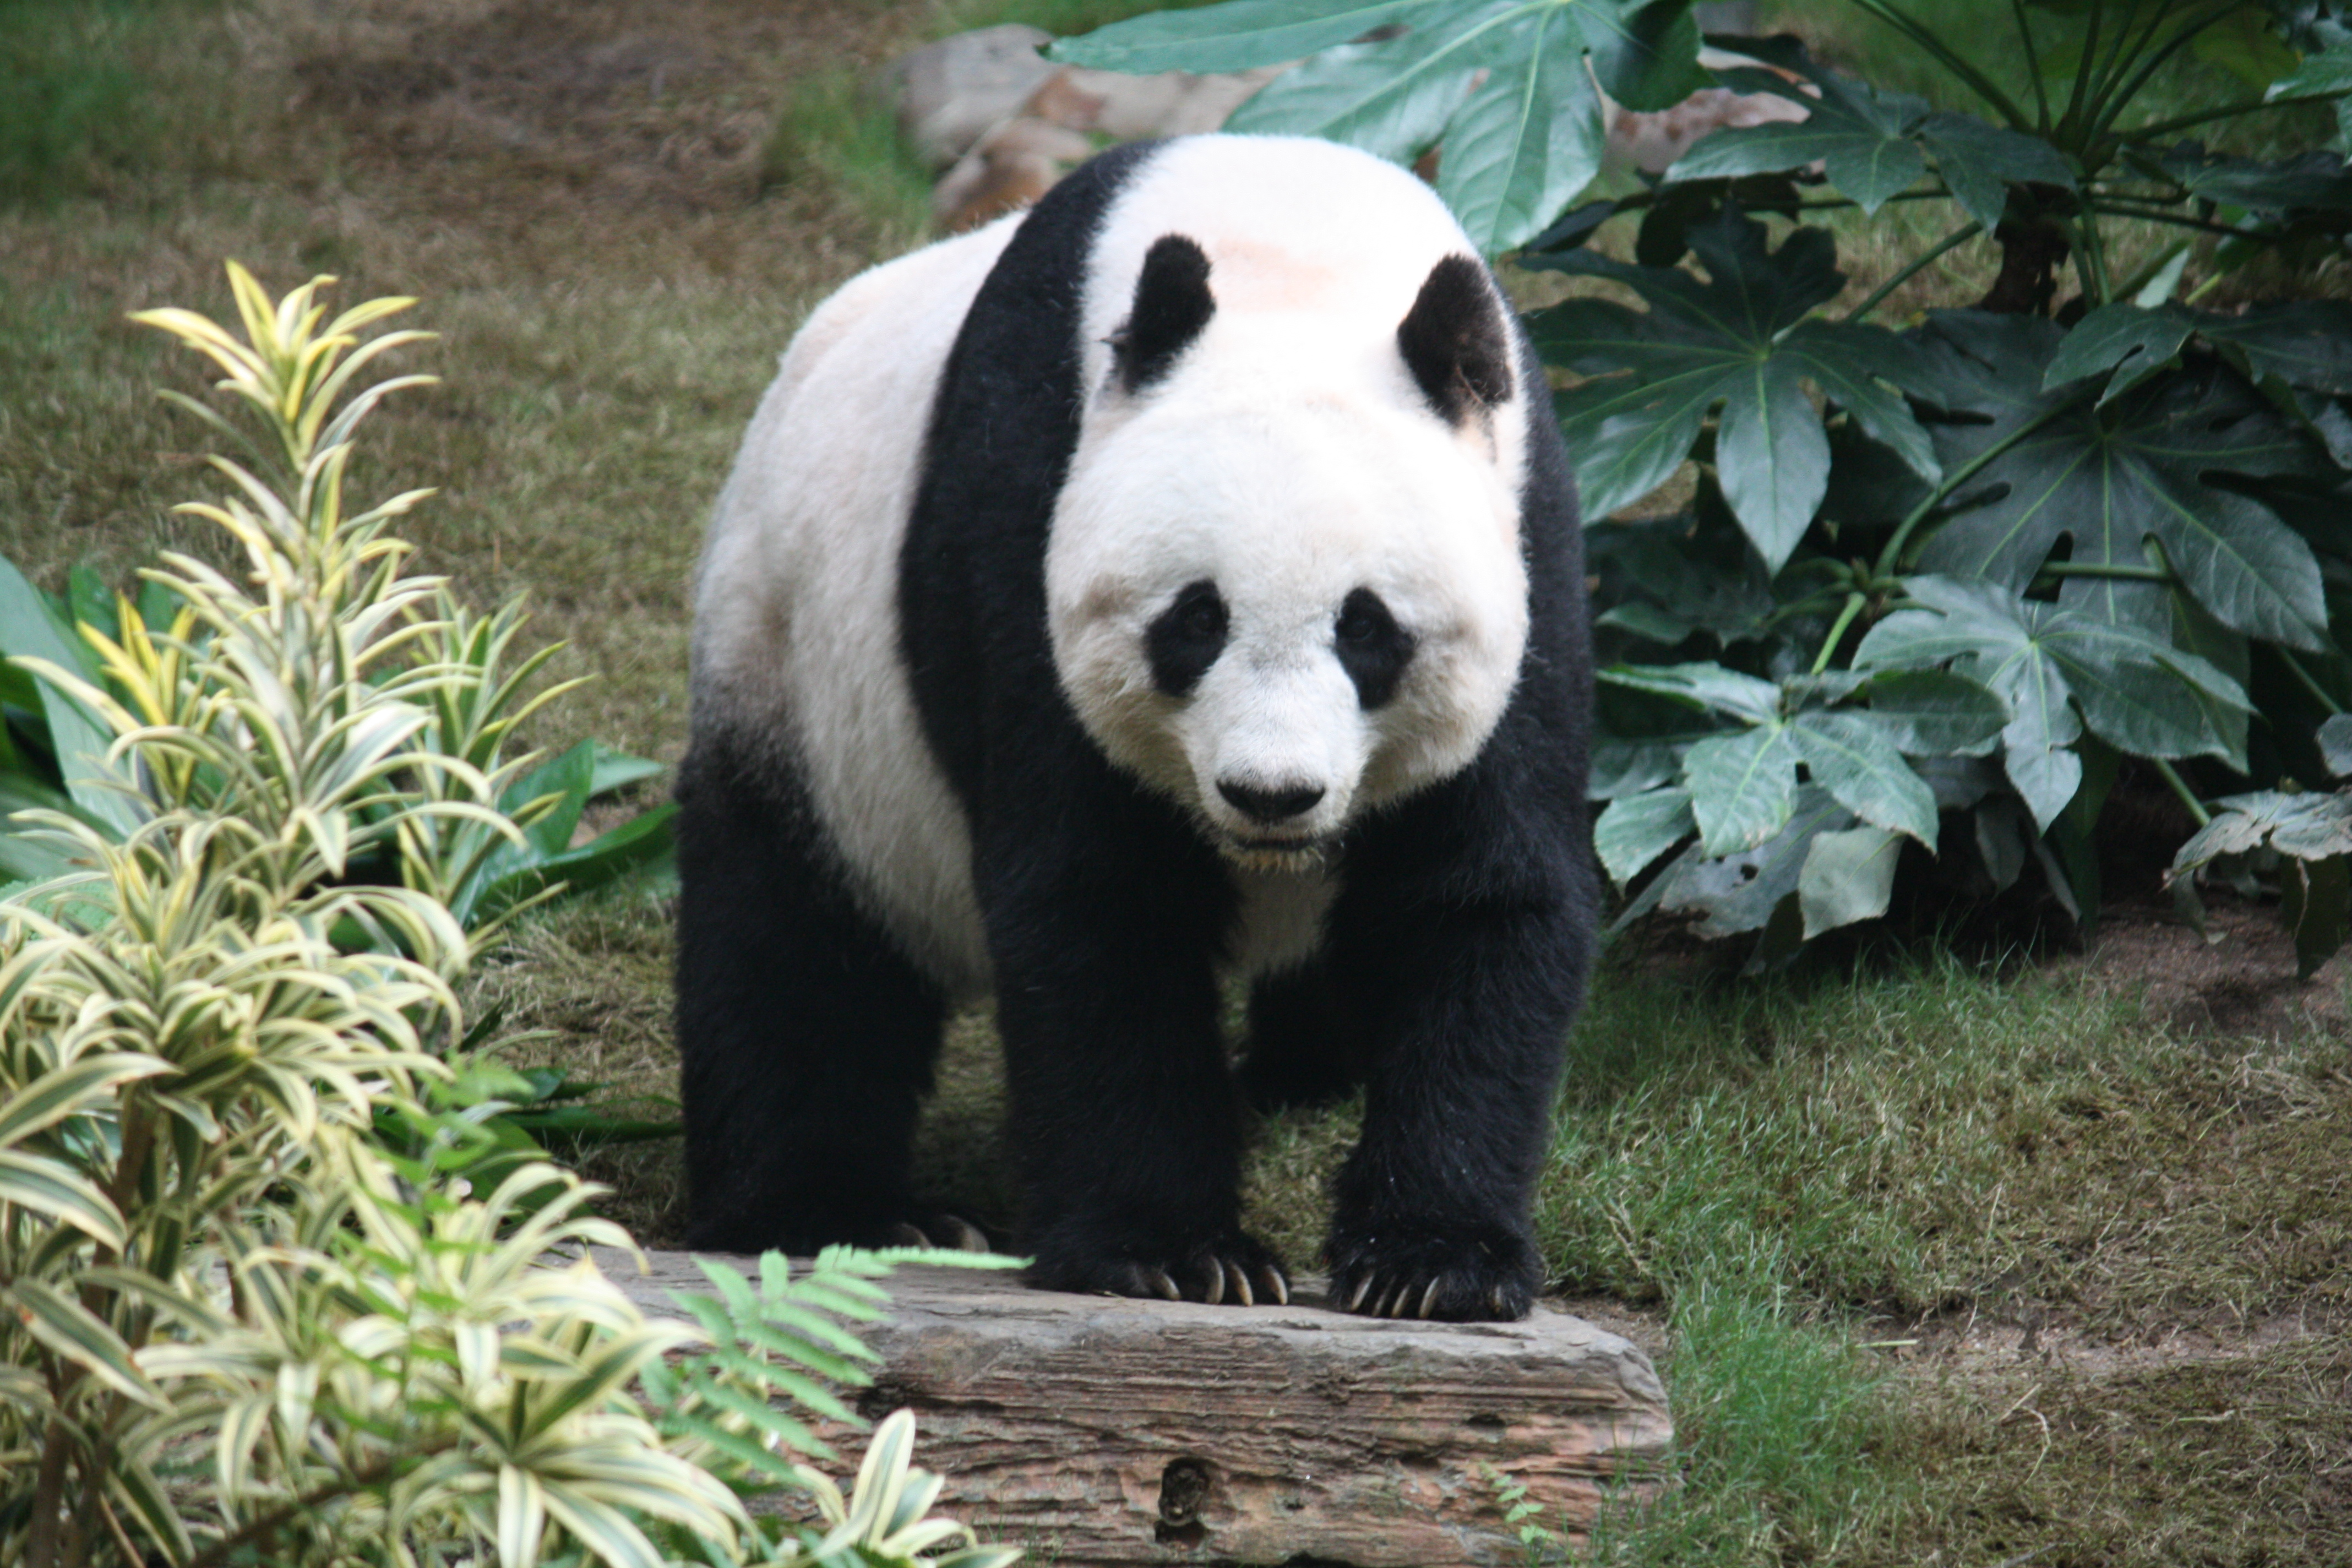 an overview of the diet and other characteristics of the panda a bear species (tremarctos ornatus), sun bear (helarctos malayanus), polar bear (ursus maritimus), panda bear diet, physical characteristics unlike other bear species.